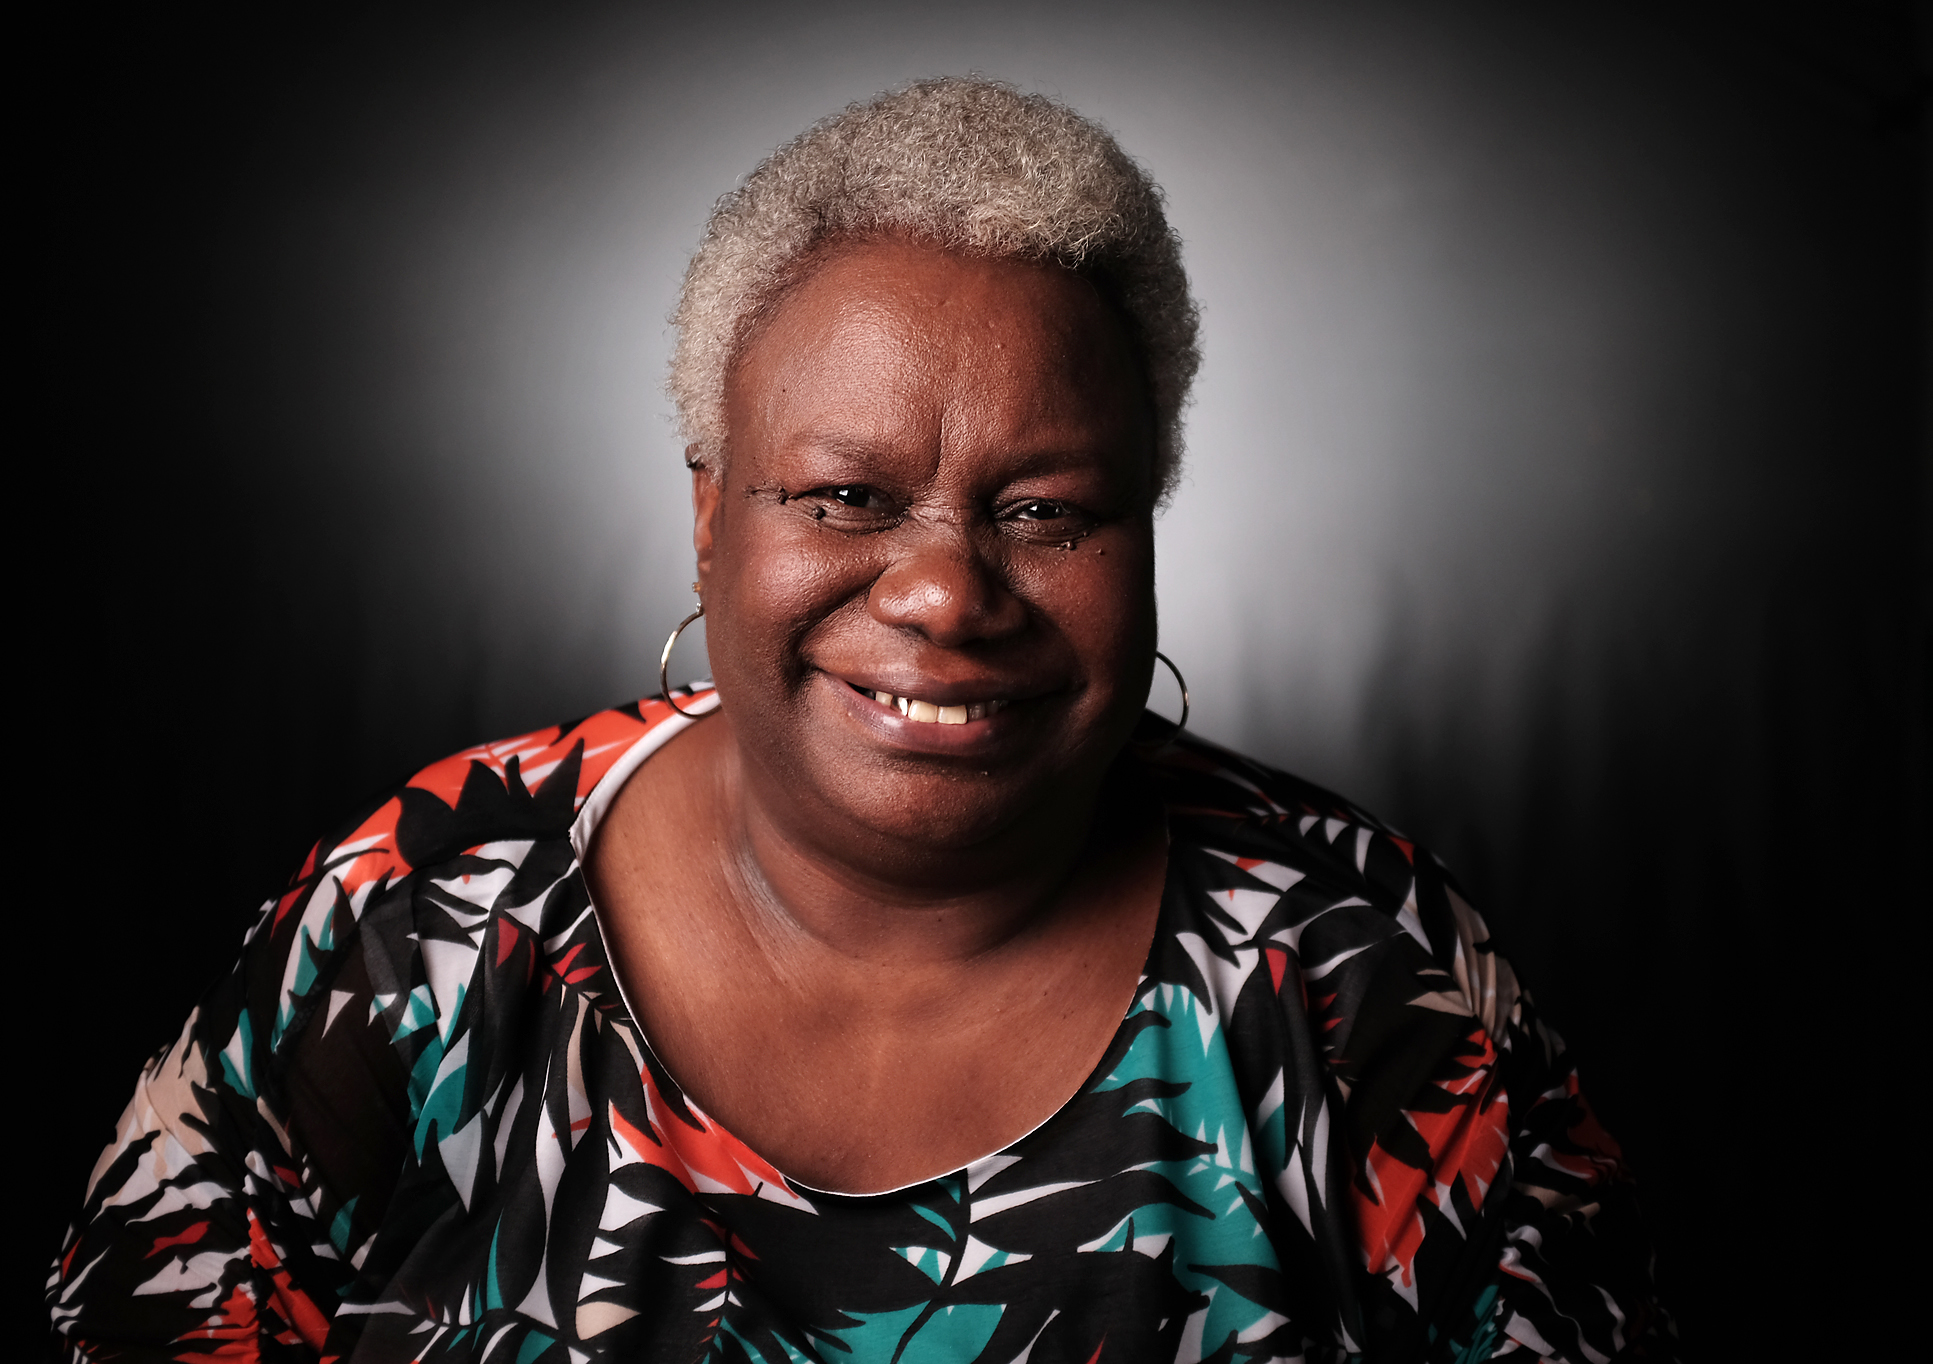 Edna Burrow of Petersburg was a manager in the city for 30 years until her retirement in 2013. She strongly recommends regular mammograms for cancer detection. Look for more of her #conquercancer story in print at the end of the month. Scott P. Yates/Progress-Index Photo